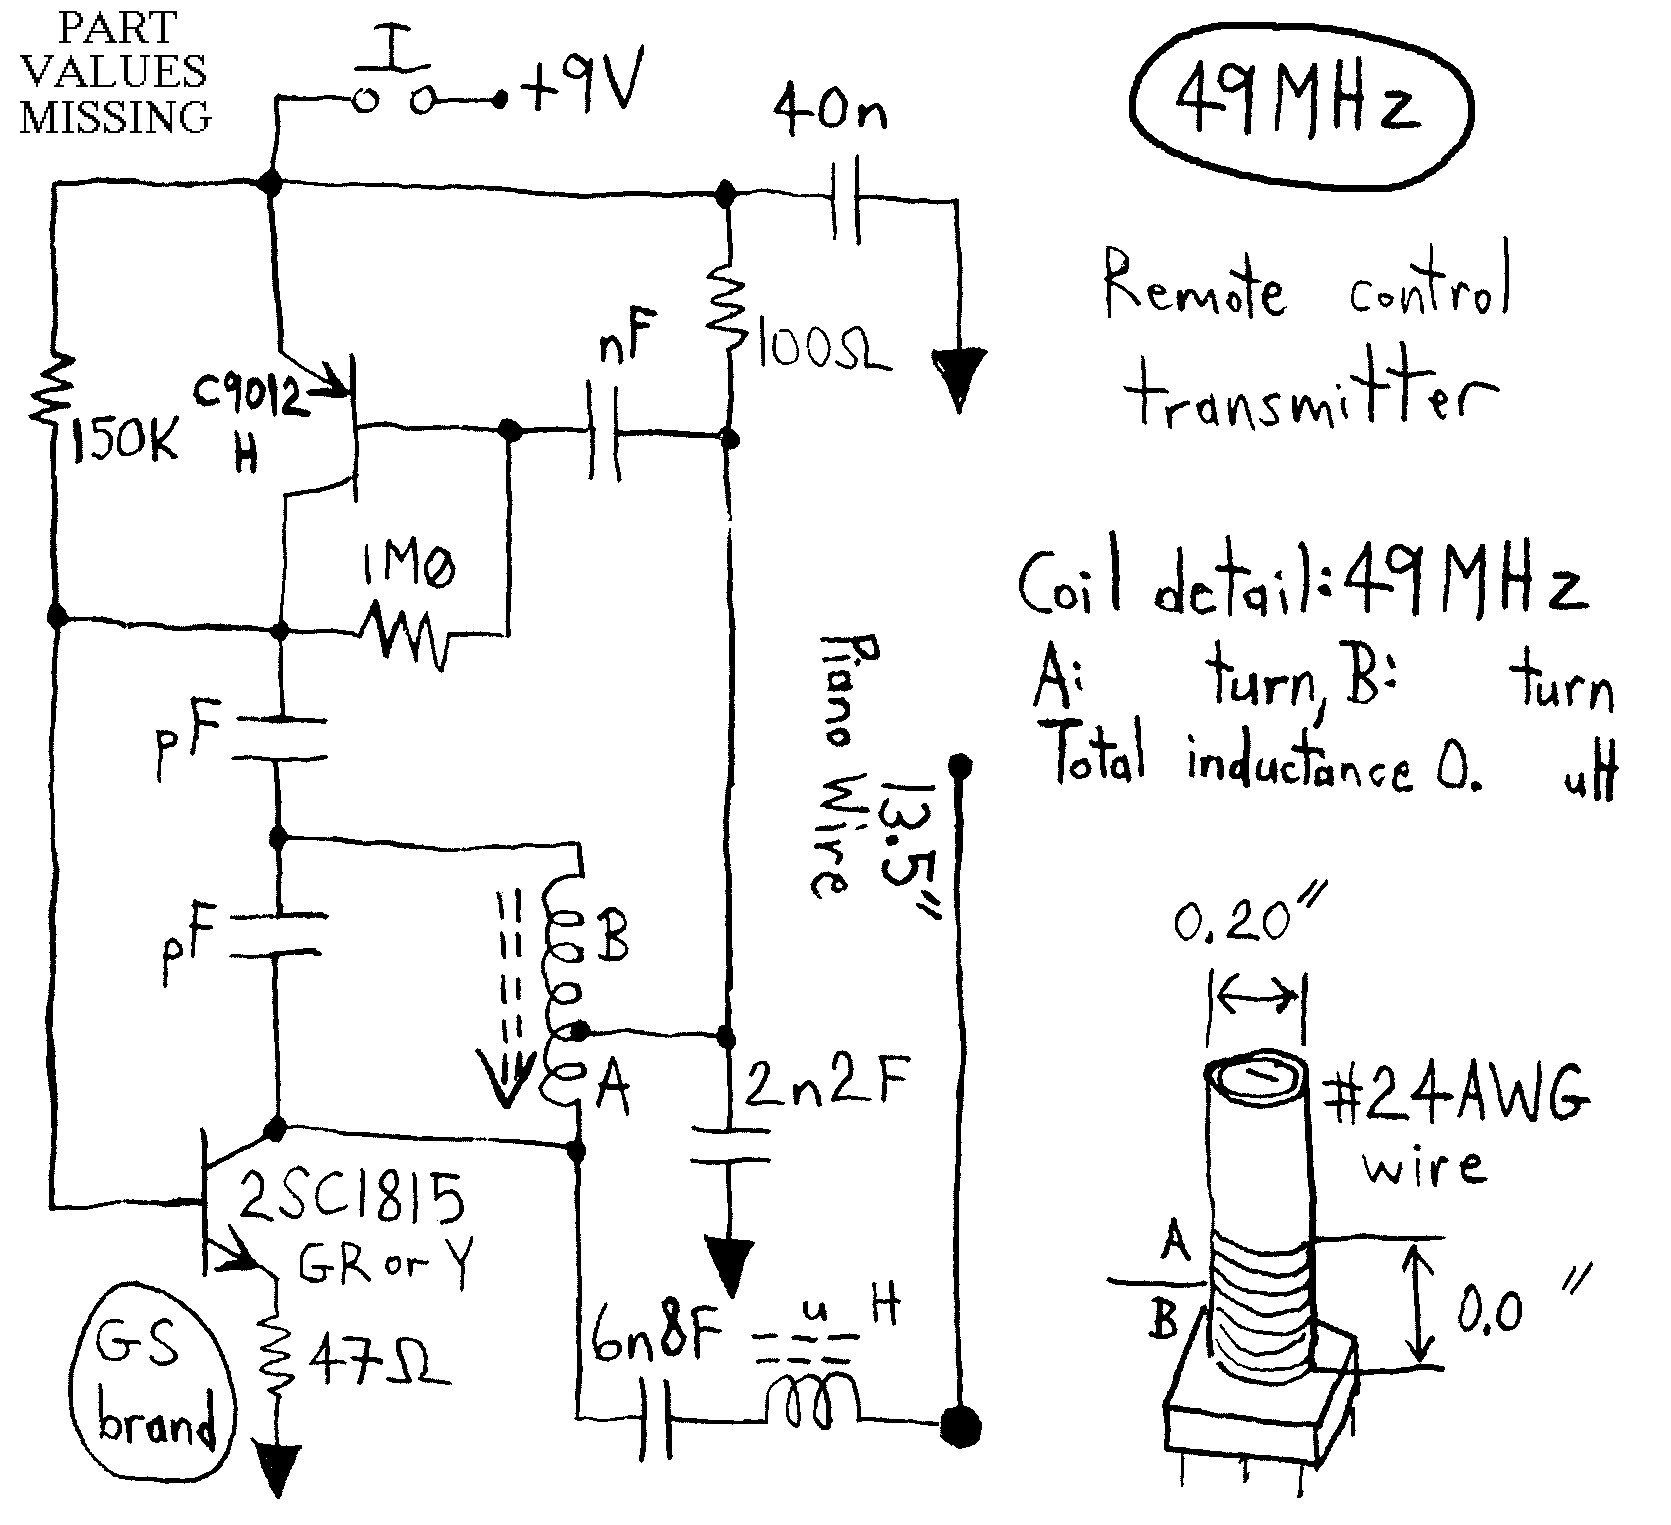 simple rc cars single channel transmitters and super regenerativenote that the 6 volt supply which consists of 4 aa cells is center tapped and feeds a 3 volt motor shown at 27mhz 40mhz and 49mhz circuit circuit circuit